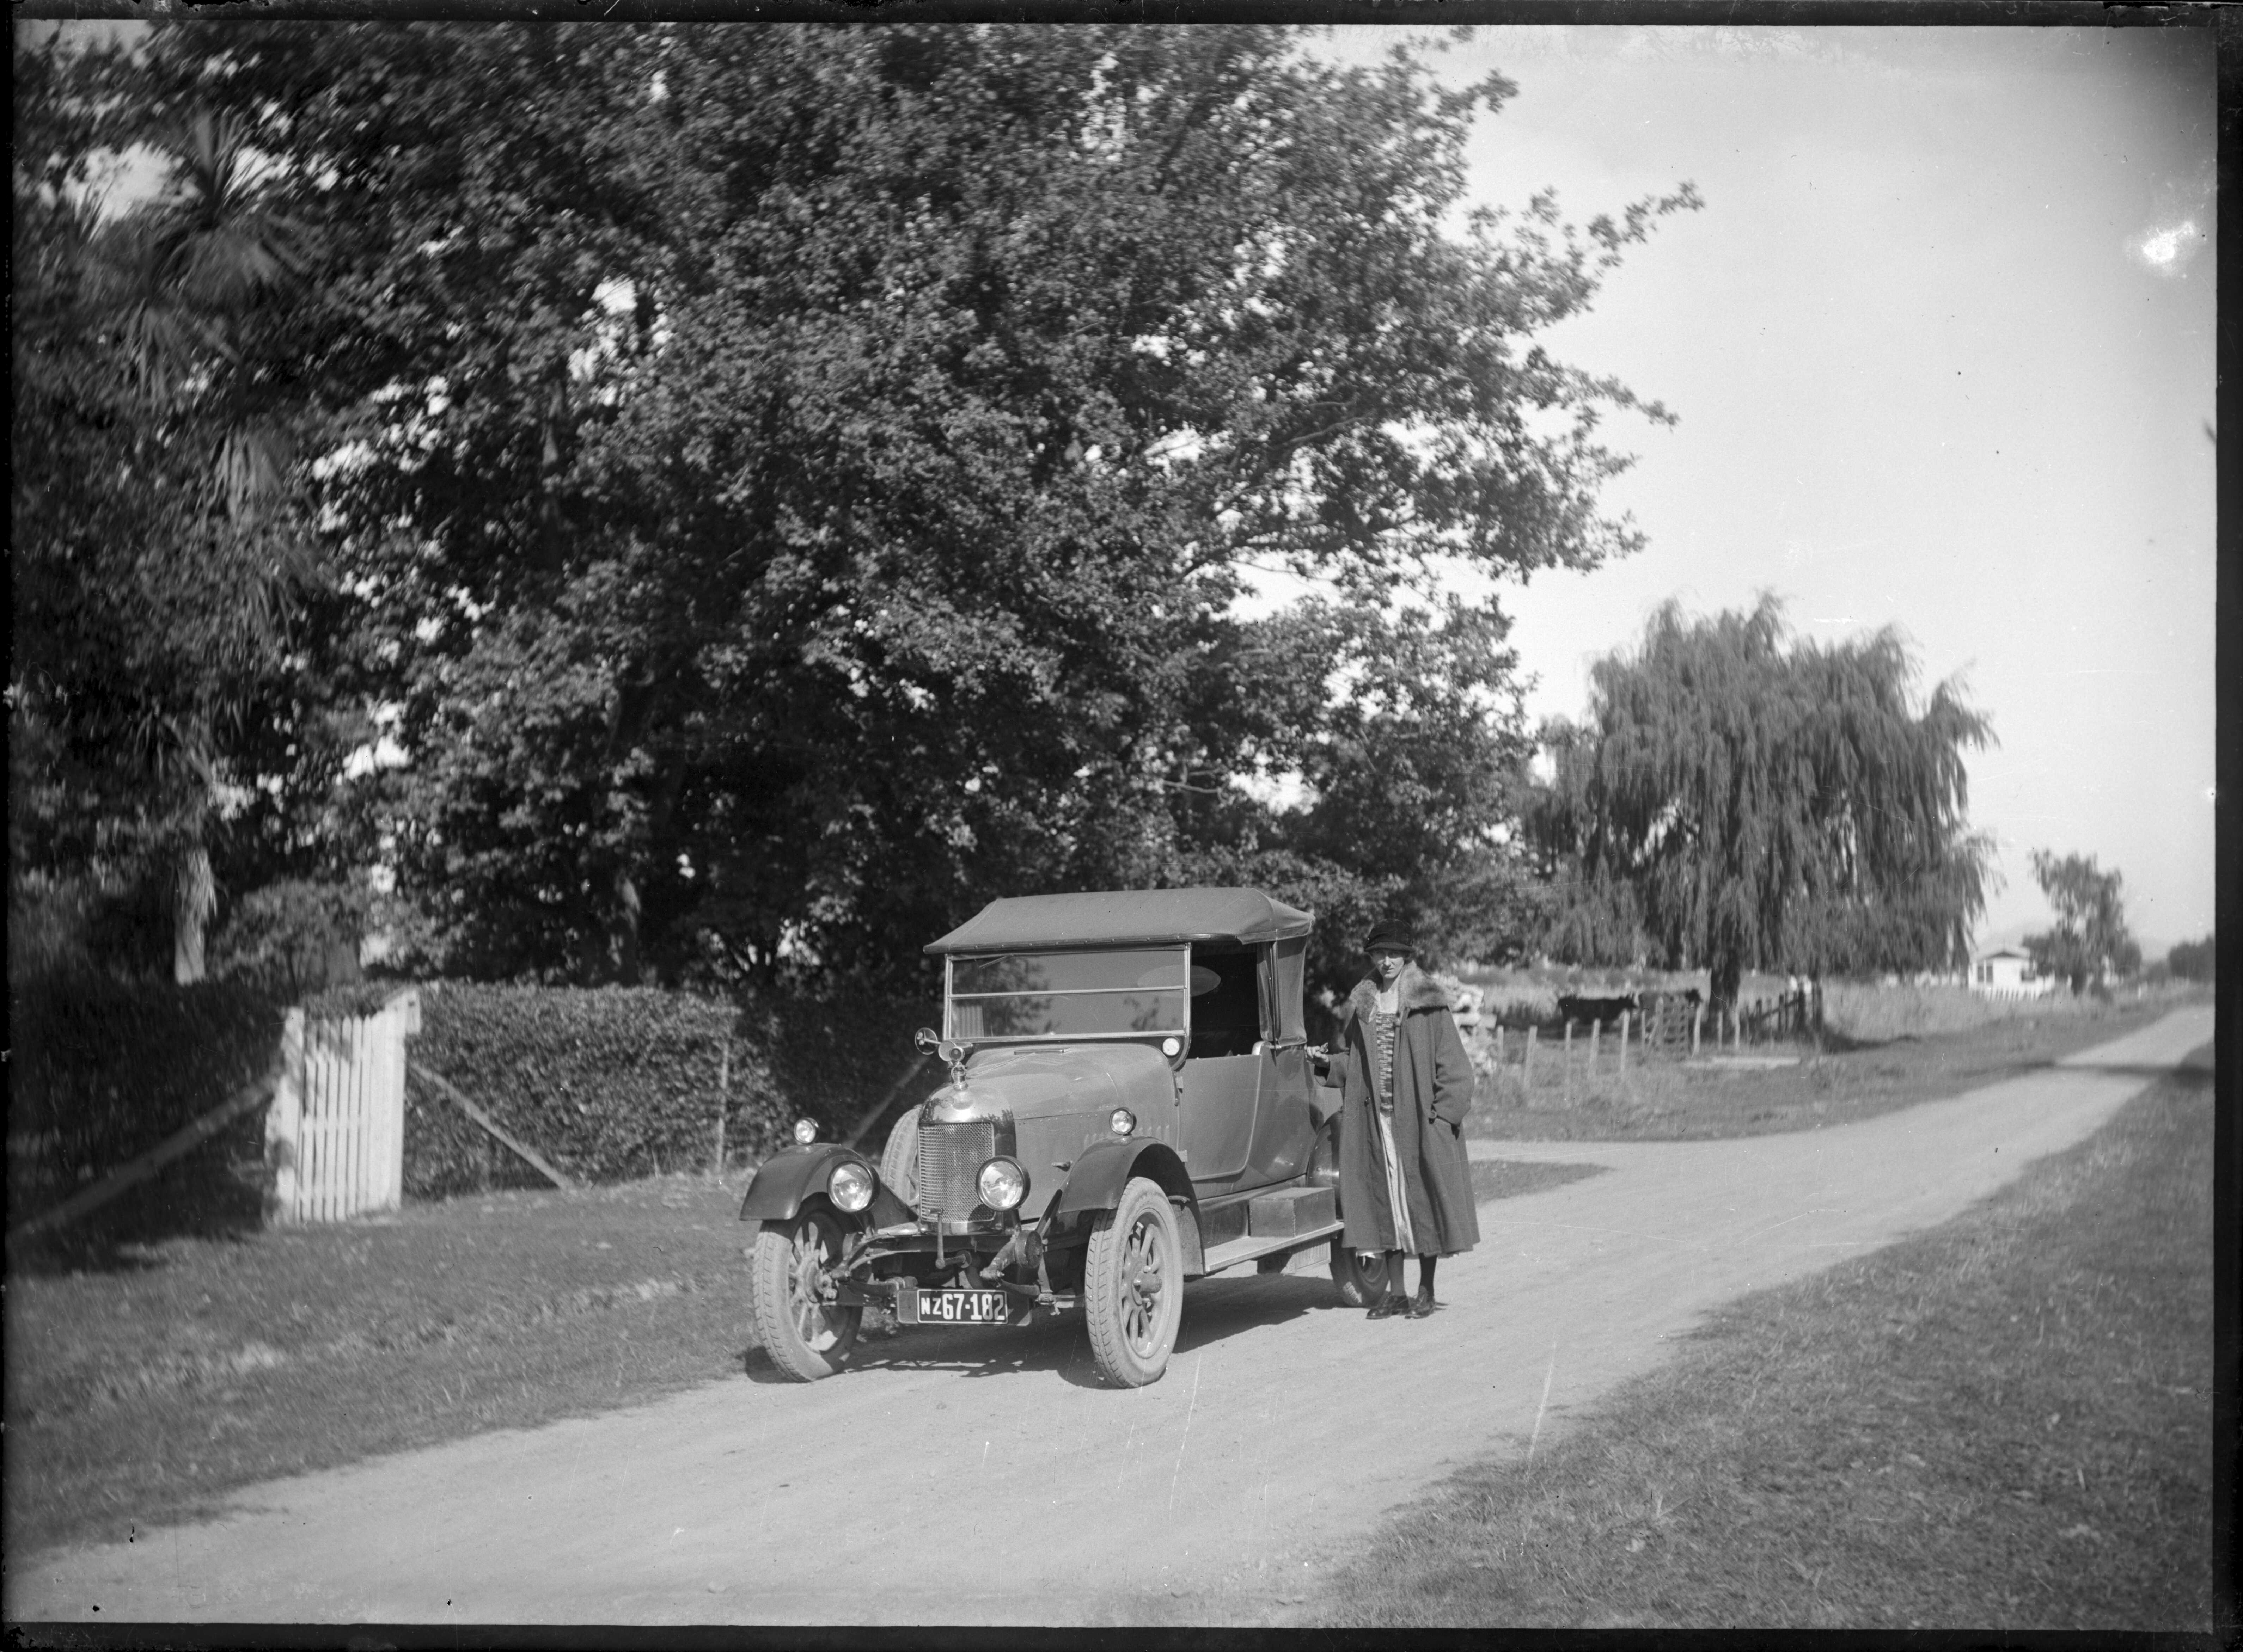 touring car, in Whiteman's Valley Road, Silverstream ATLIB 330745.png English: View of the photographer's wife Laura Godber standing beside a touring car in